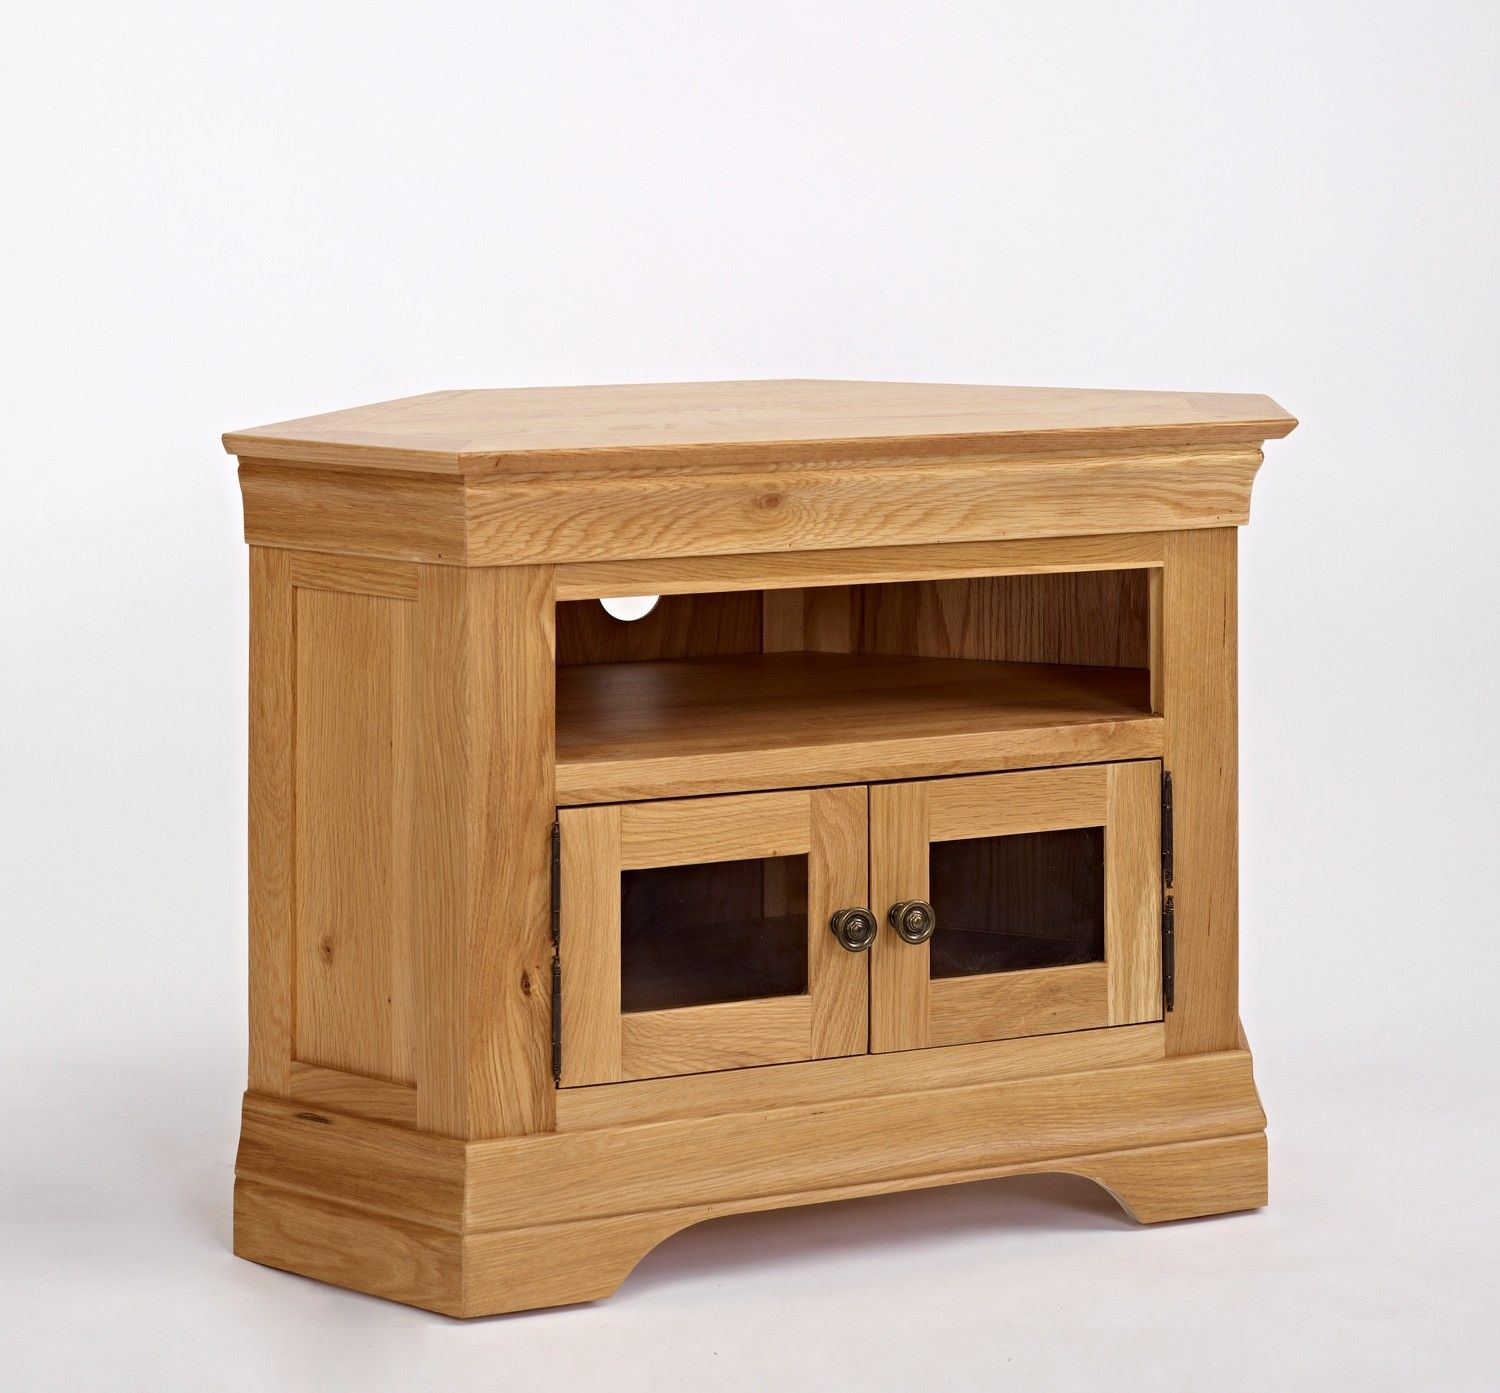 Normandy Oak Corner Tv Unit Is An Elegant French Styled Range Crafted From Carefully Selected Solid Oak And Oak Corner Tv Unit Corner Tv Unit Decor Around Tv